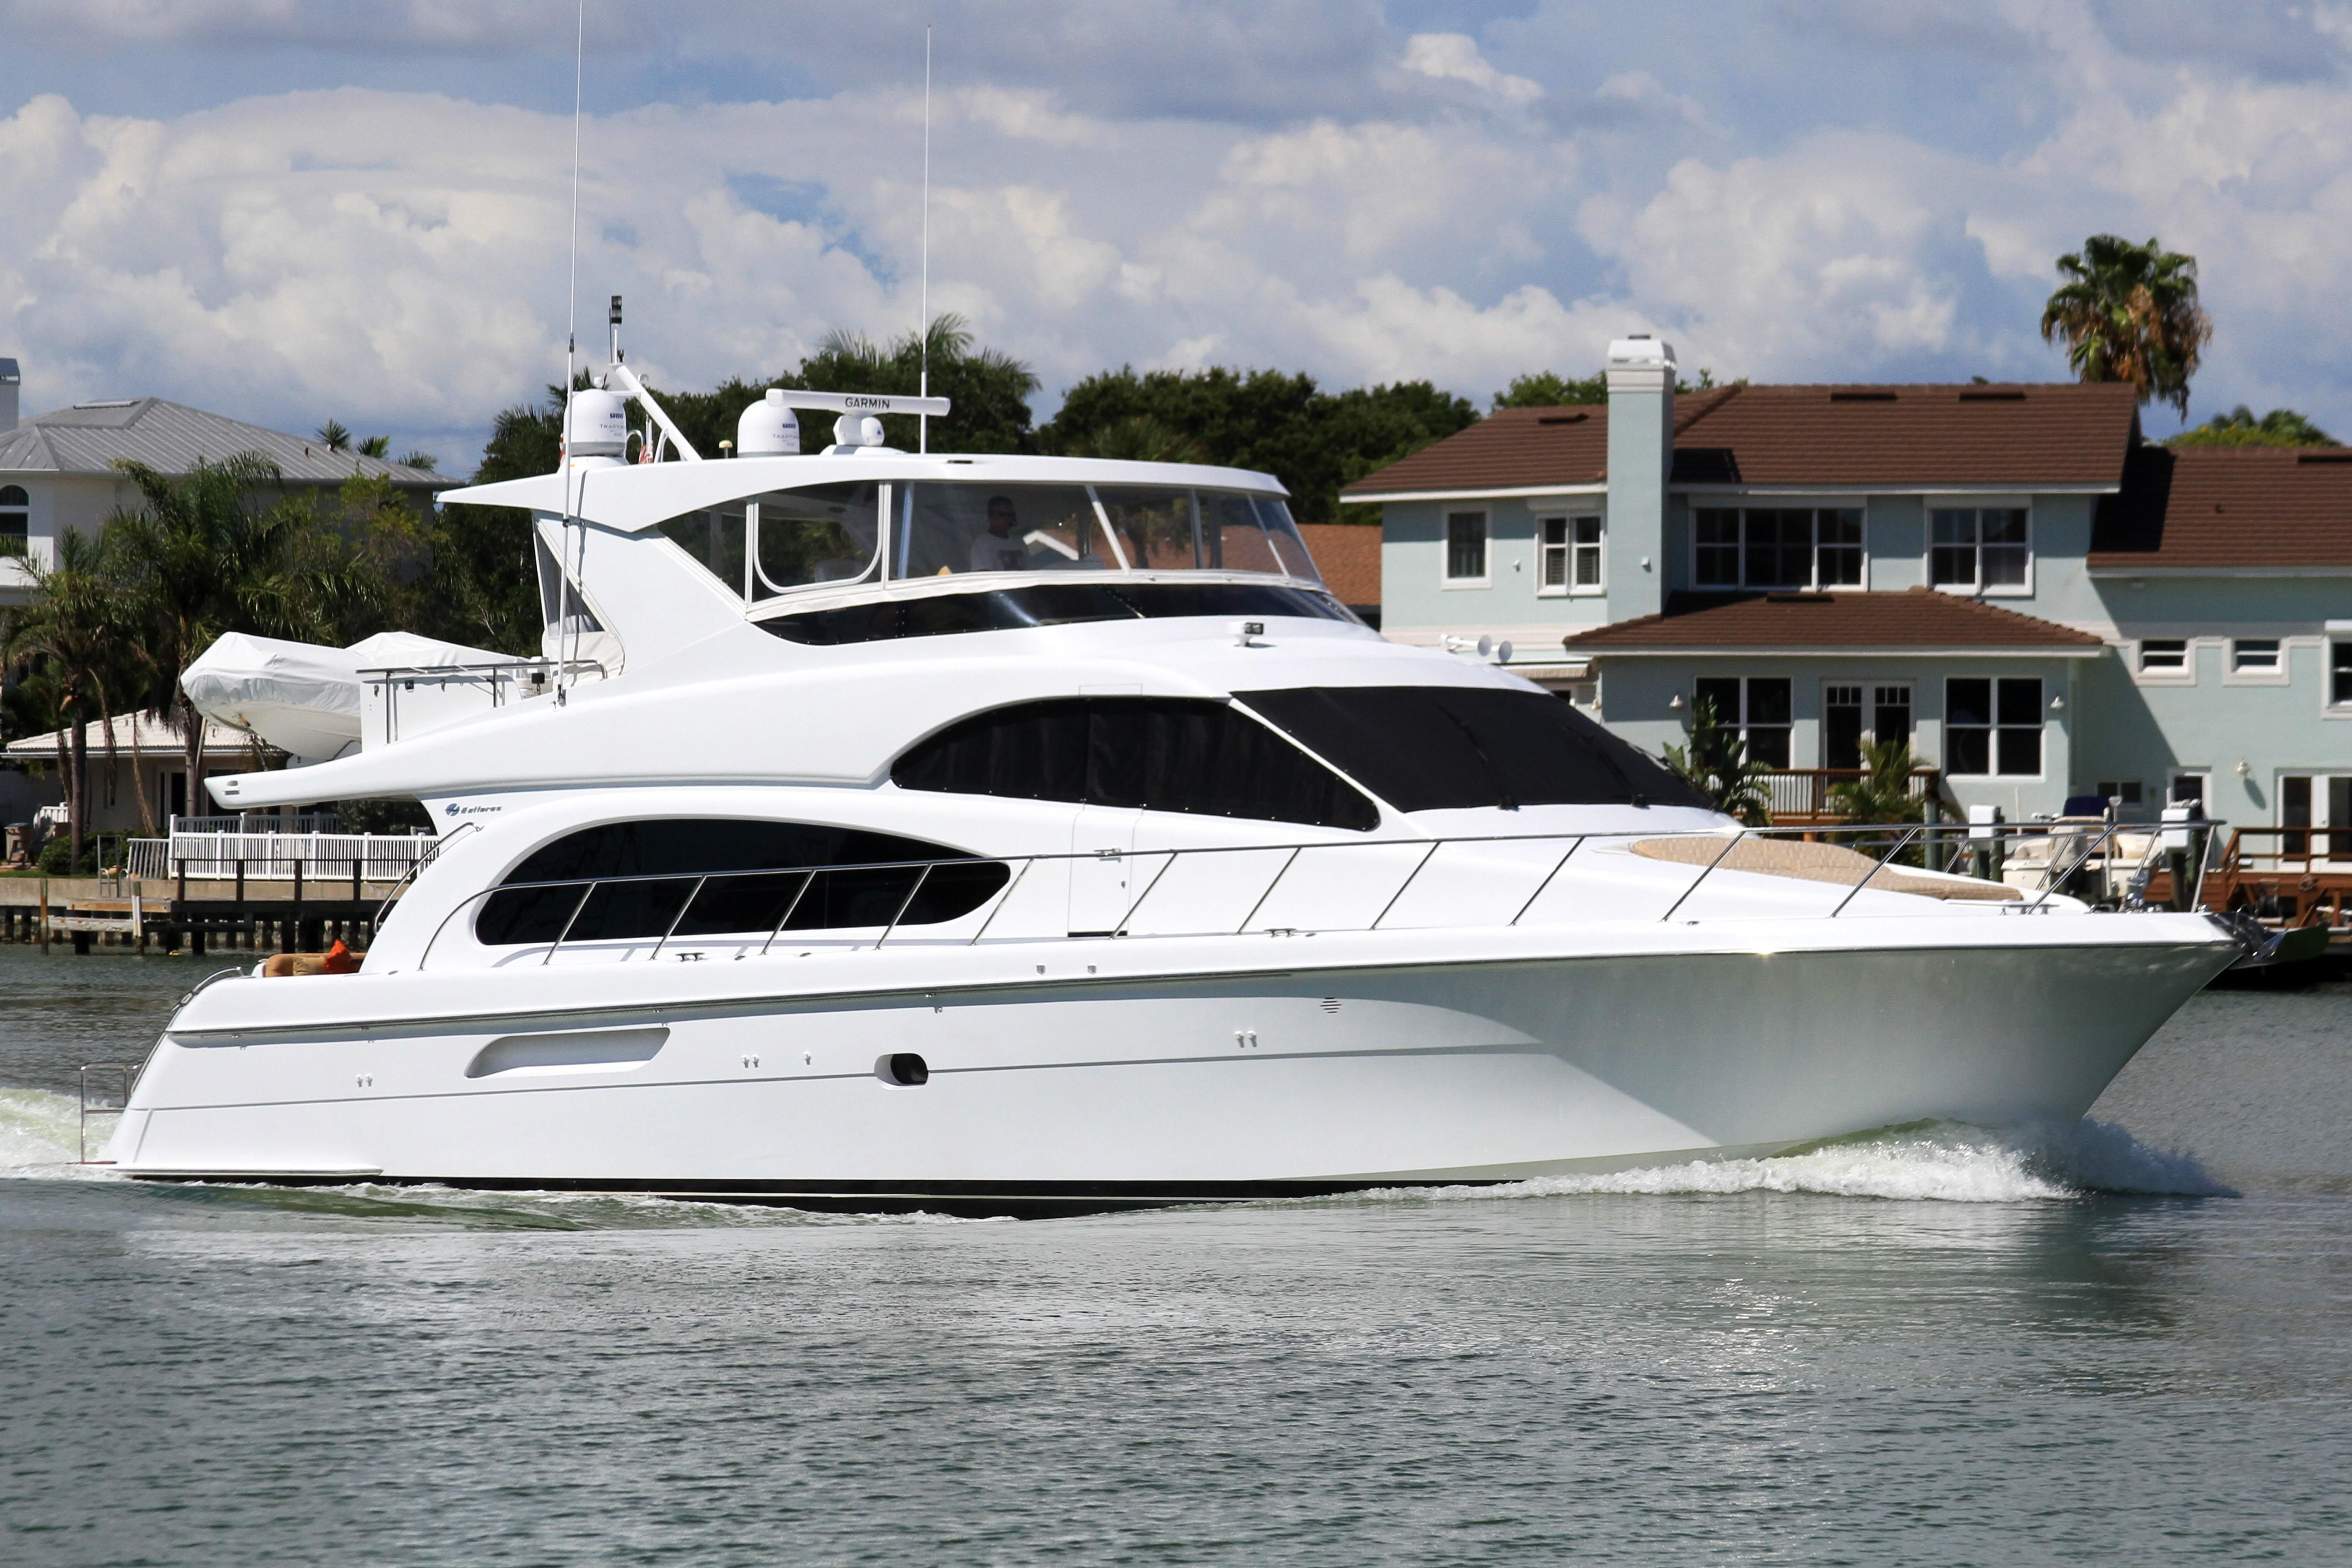 2007 hatteras 64 motor yacht power boat for sale www for Boat motors for sale in florida